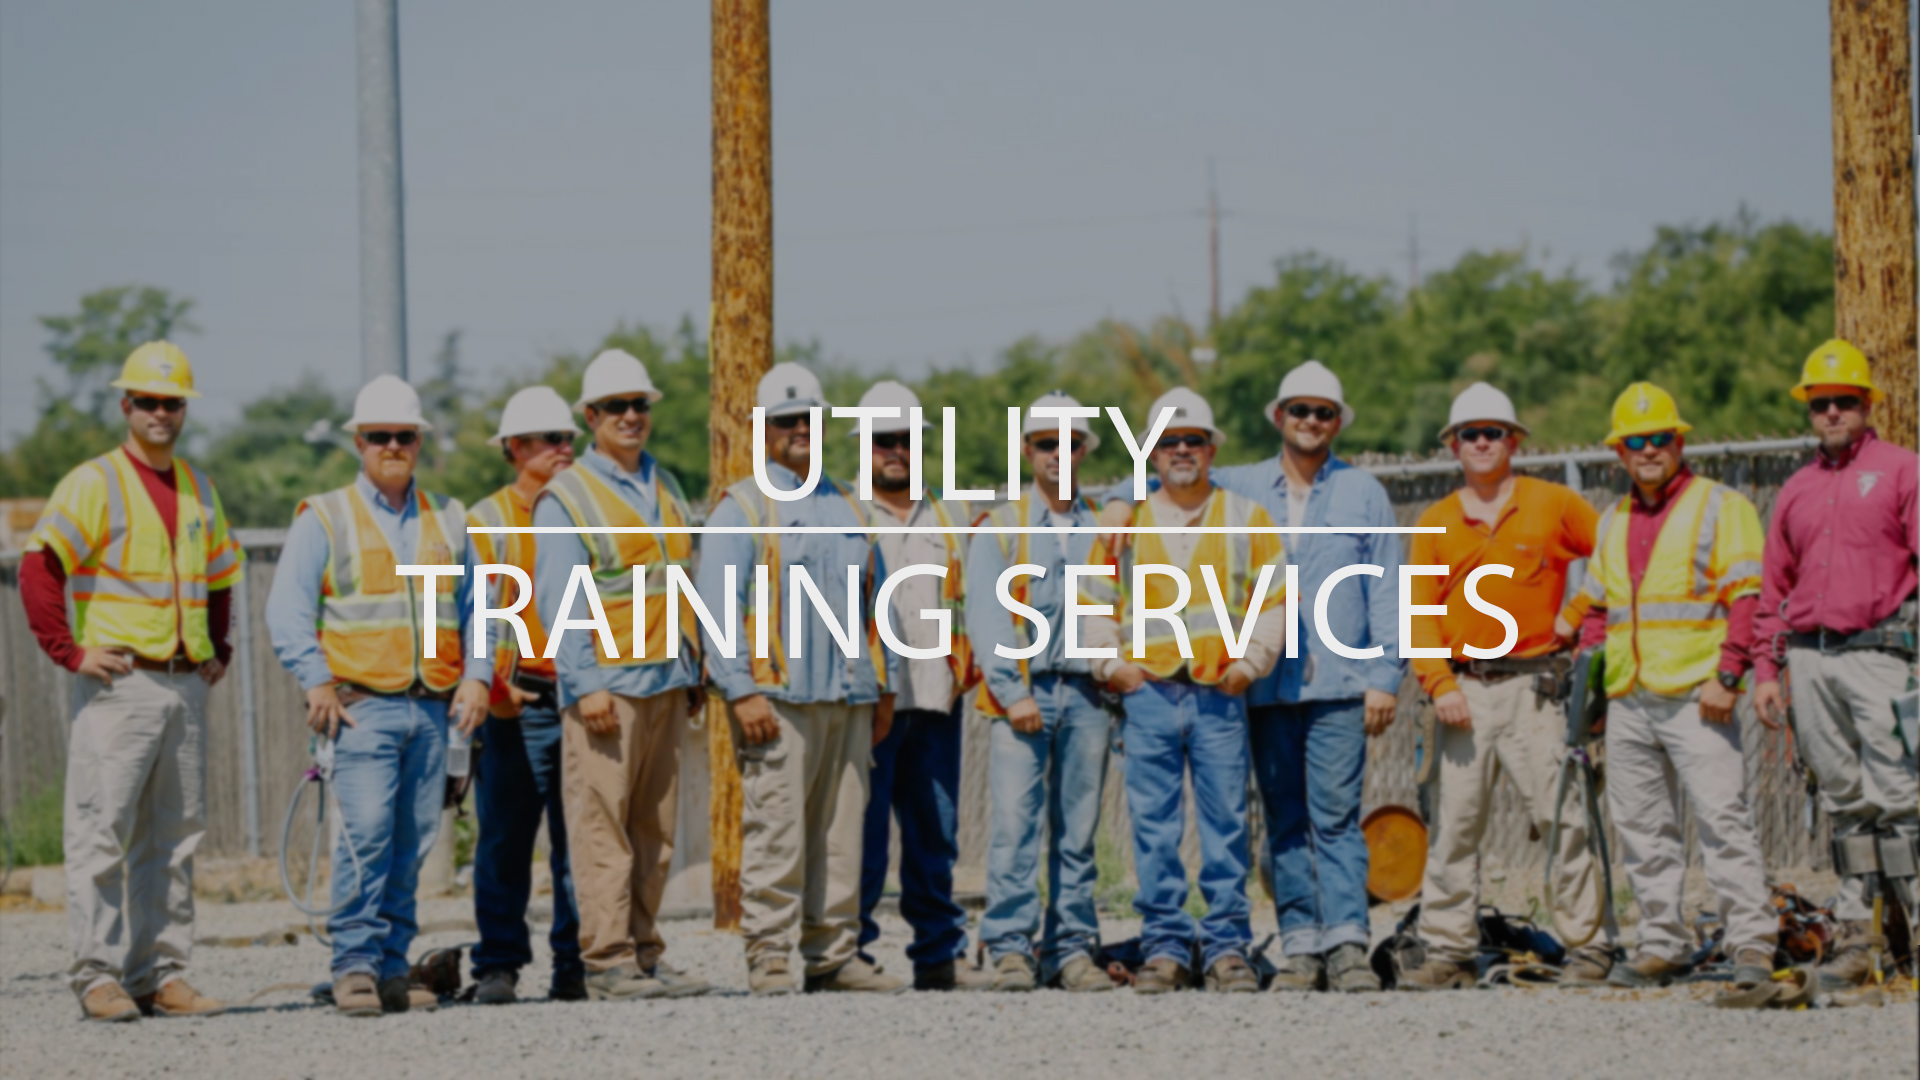 Utility Training Services